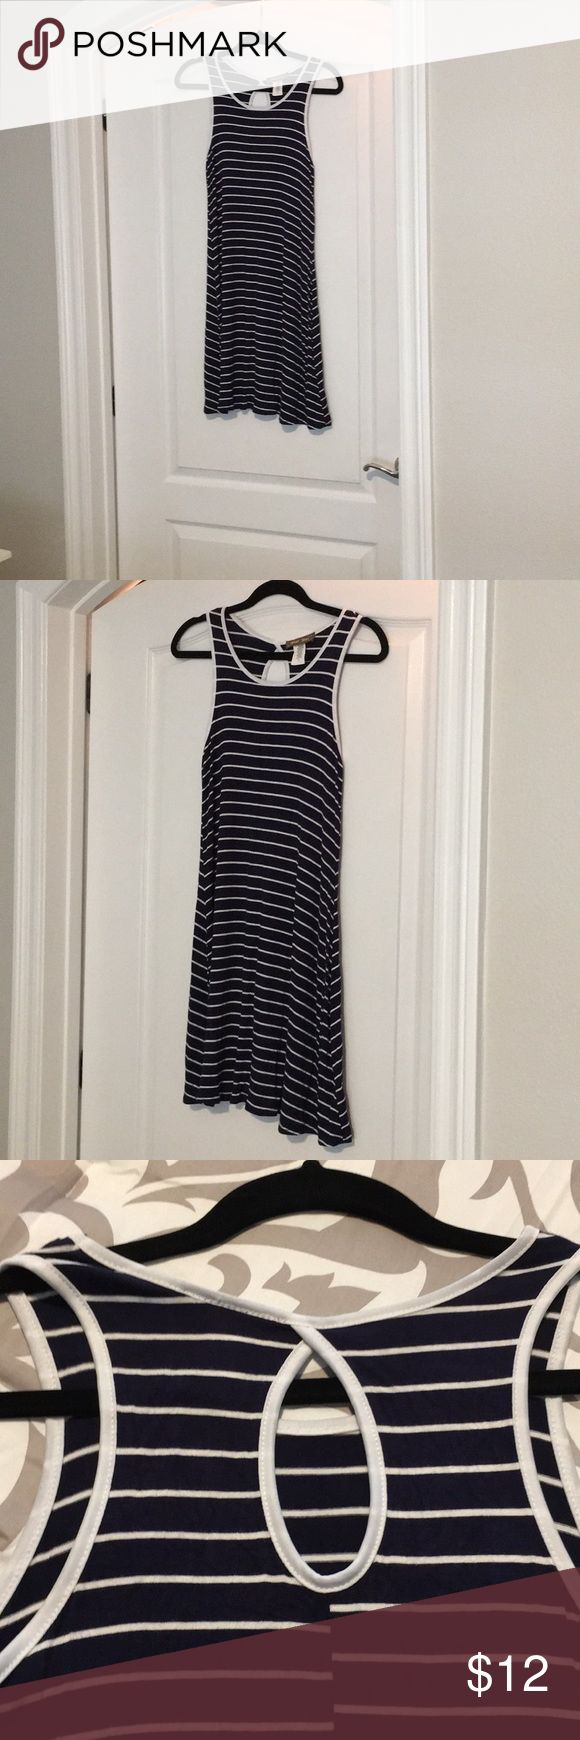 Dress. Short summer dress. Navy blue and white stripped. Perfect for a casual day or a beach cover-up. Worn a few times.  Perfect condition ‼️ Brat Star Dresses Midi